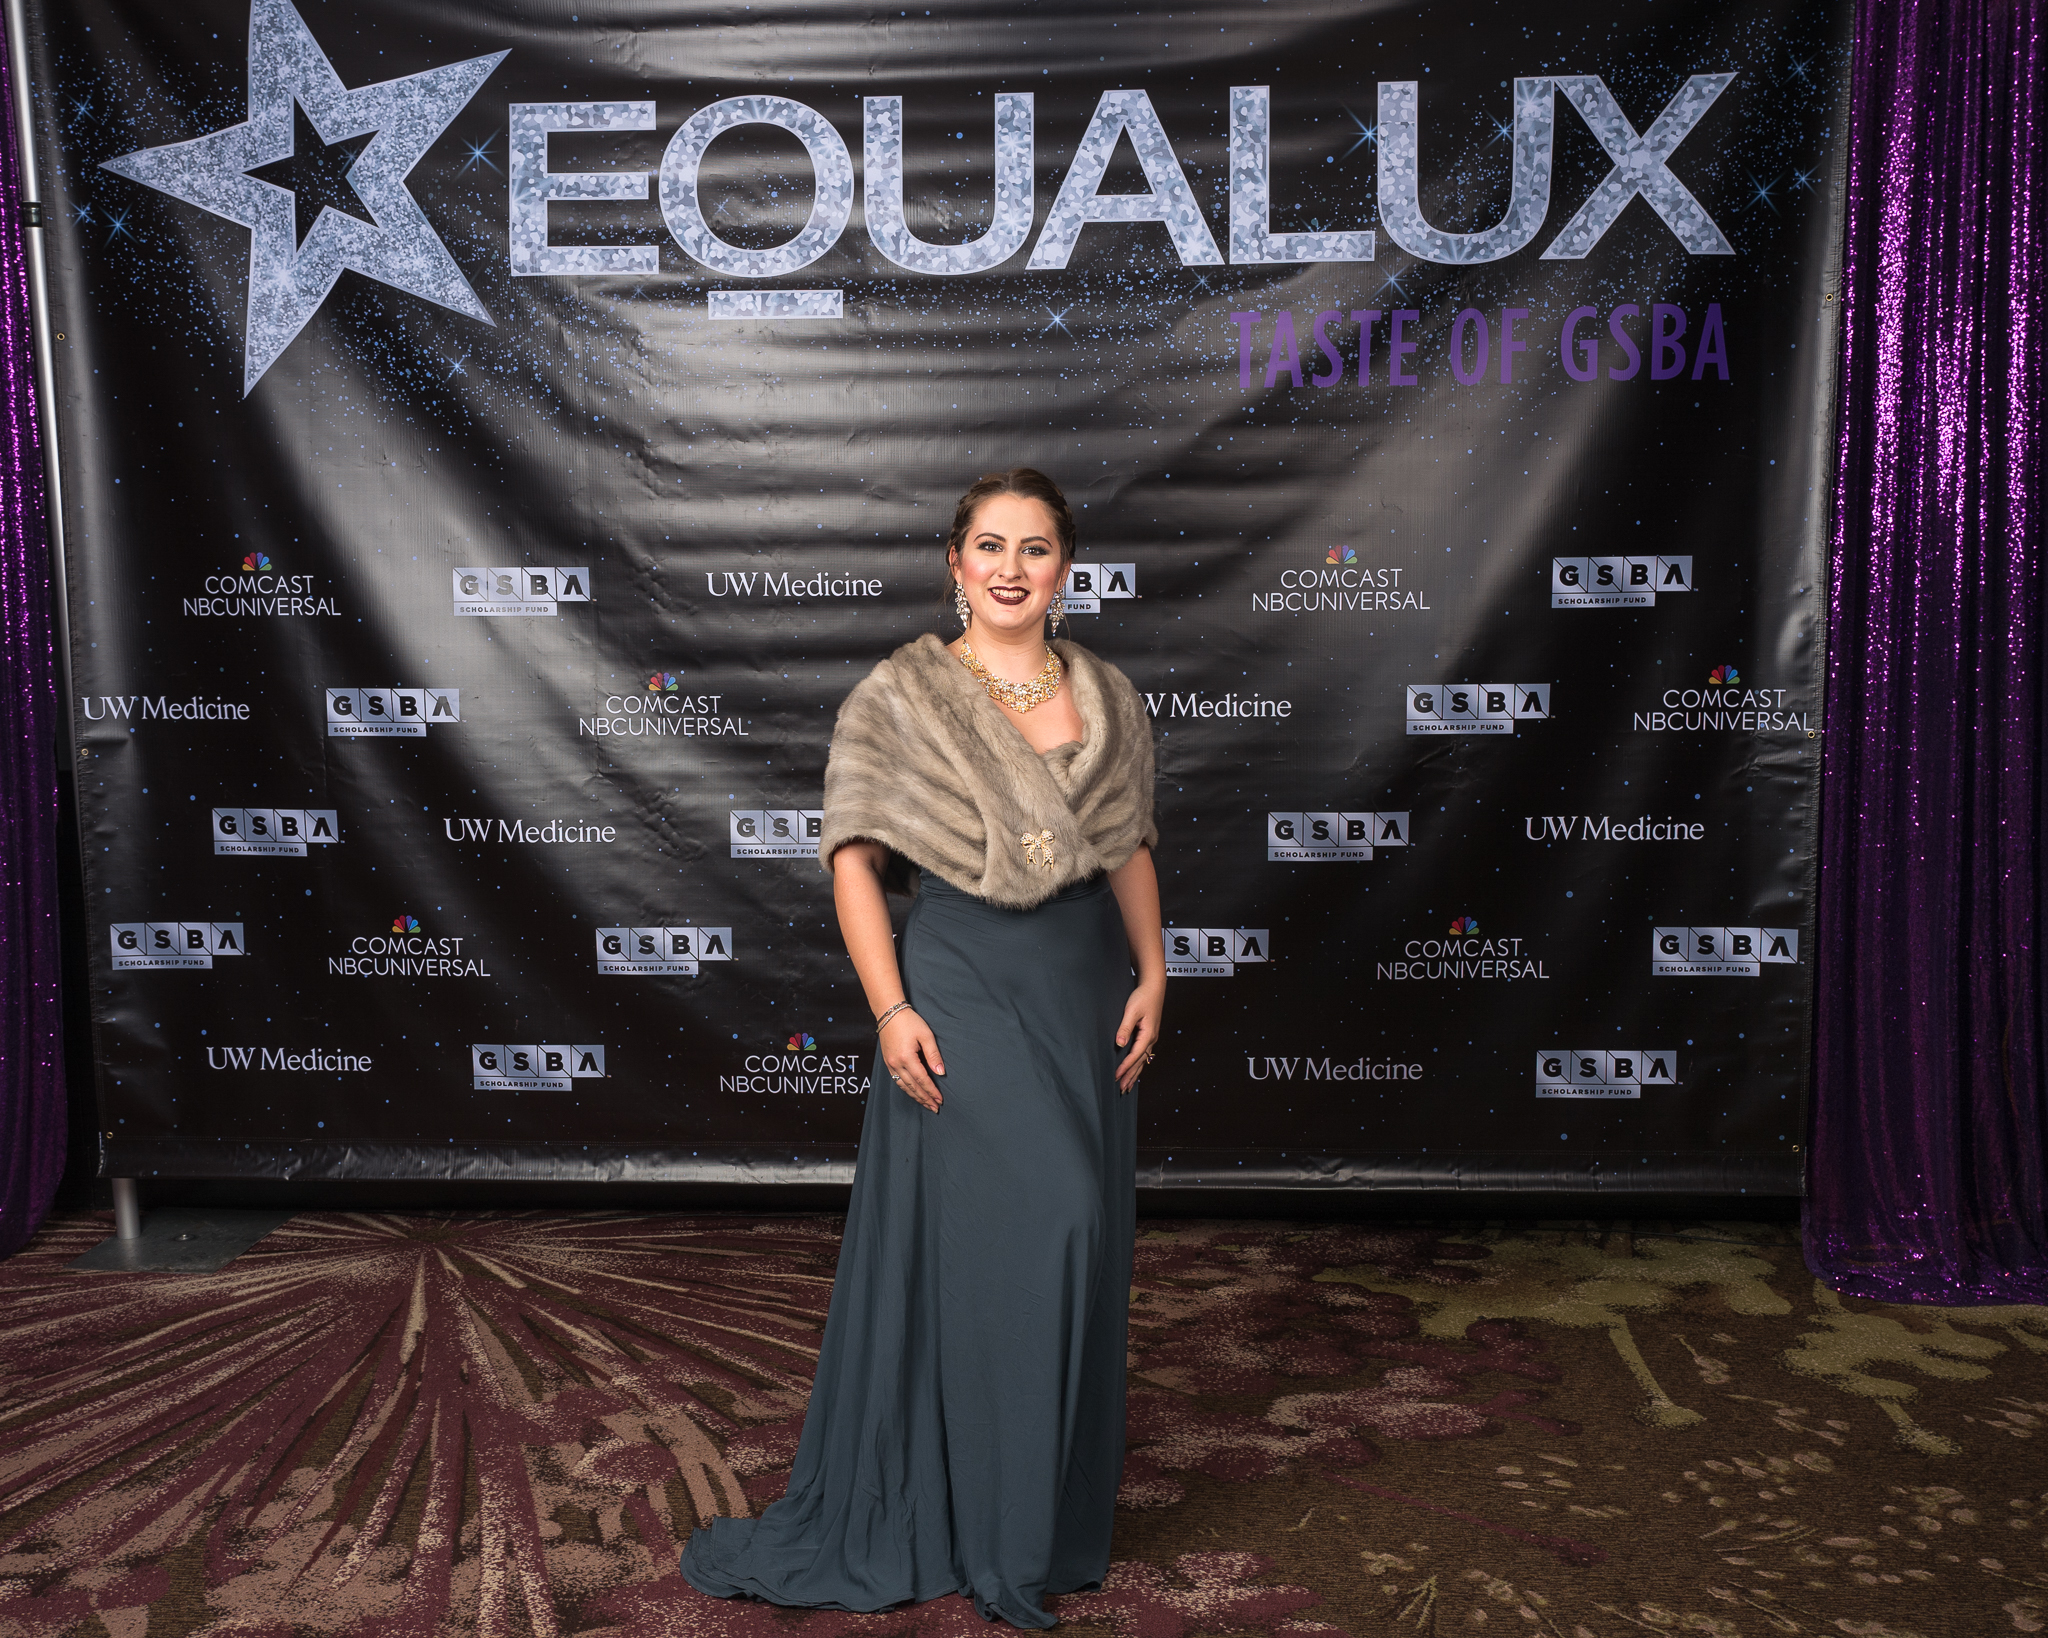 111718_GSBA EQUALUX at The Westin Seattle (Credit- Nate Gowdy)-156.jpg